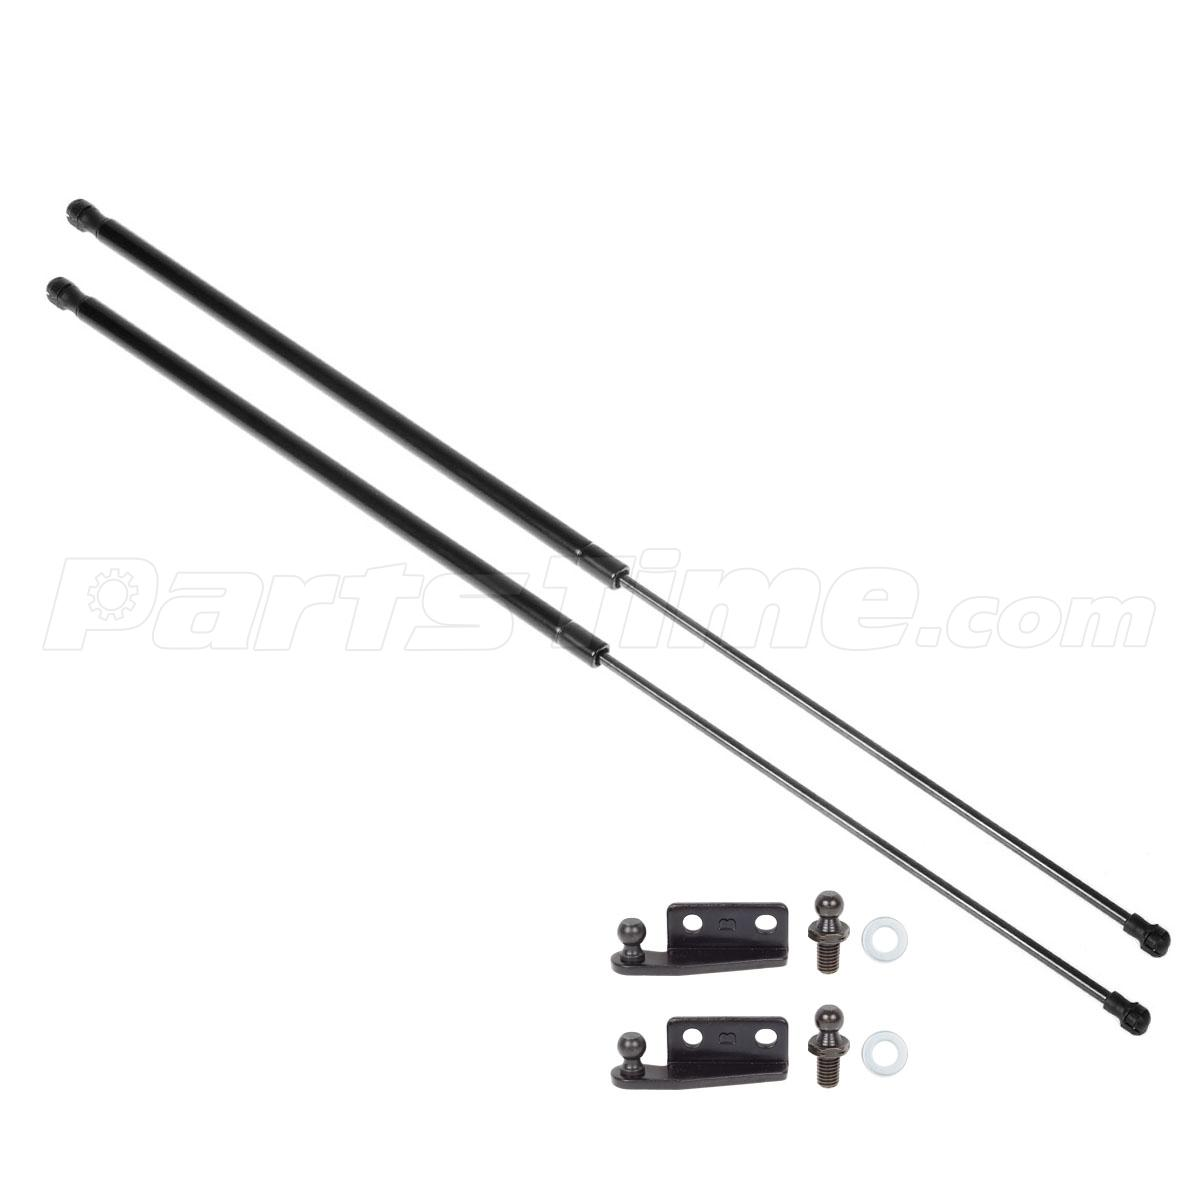 Qty 2 Hatch Lift Supports Prop Rod Shock Damper Gas Spring